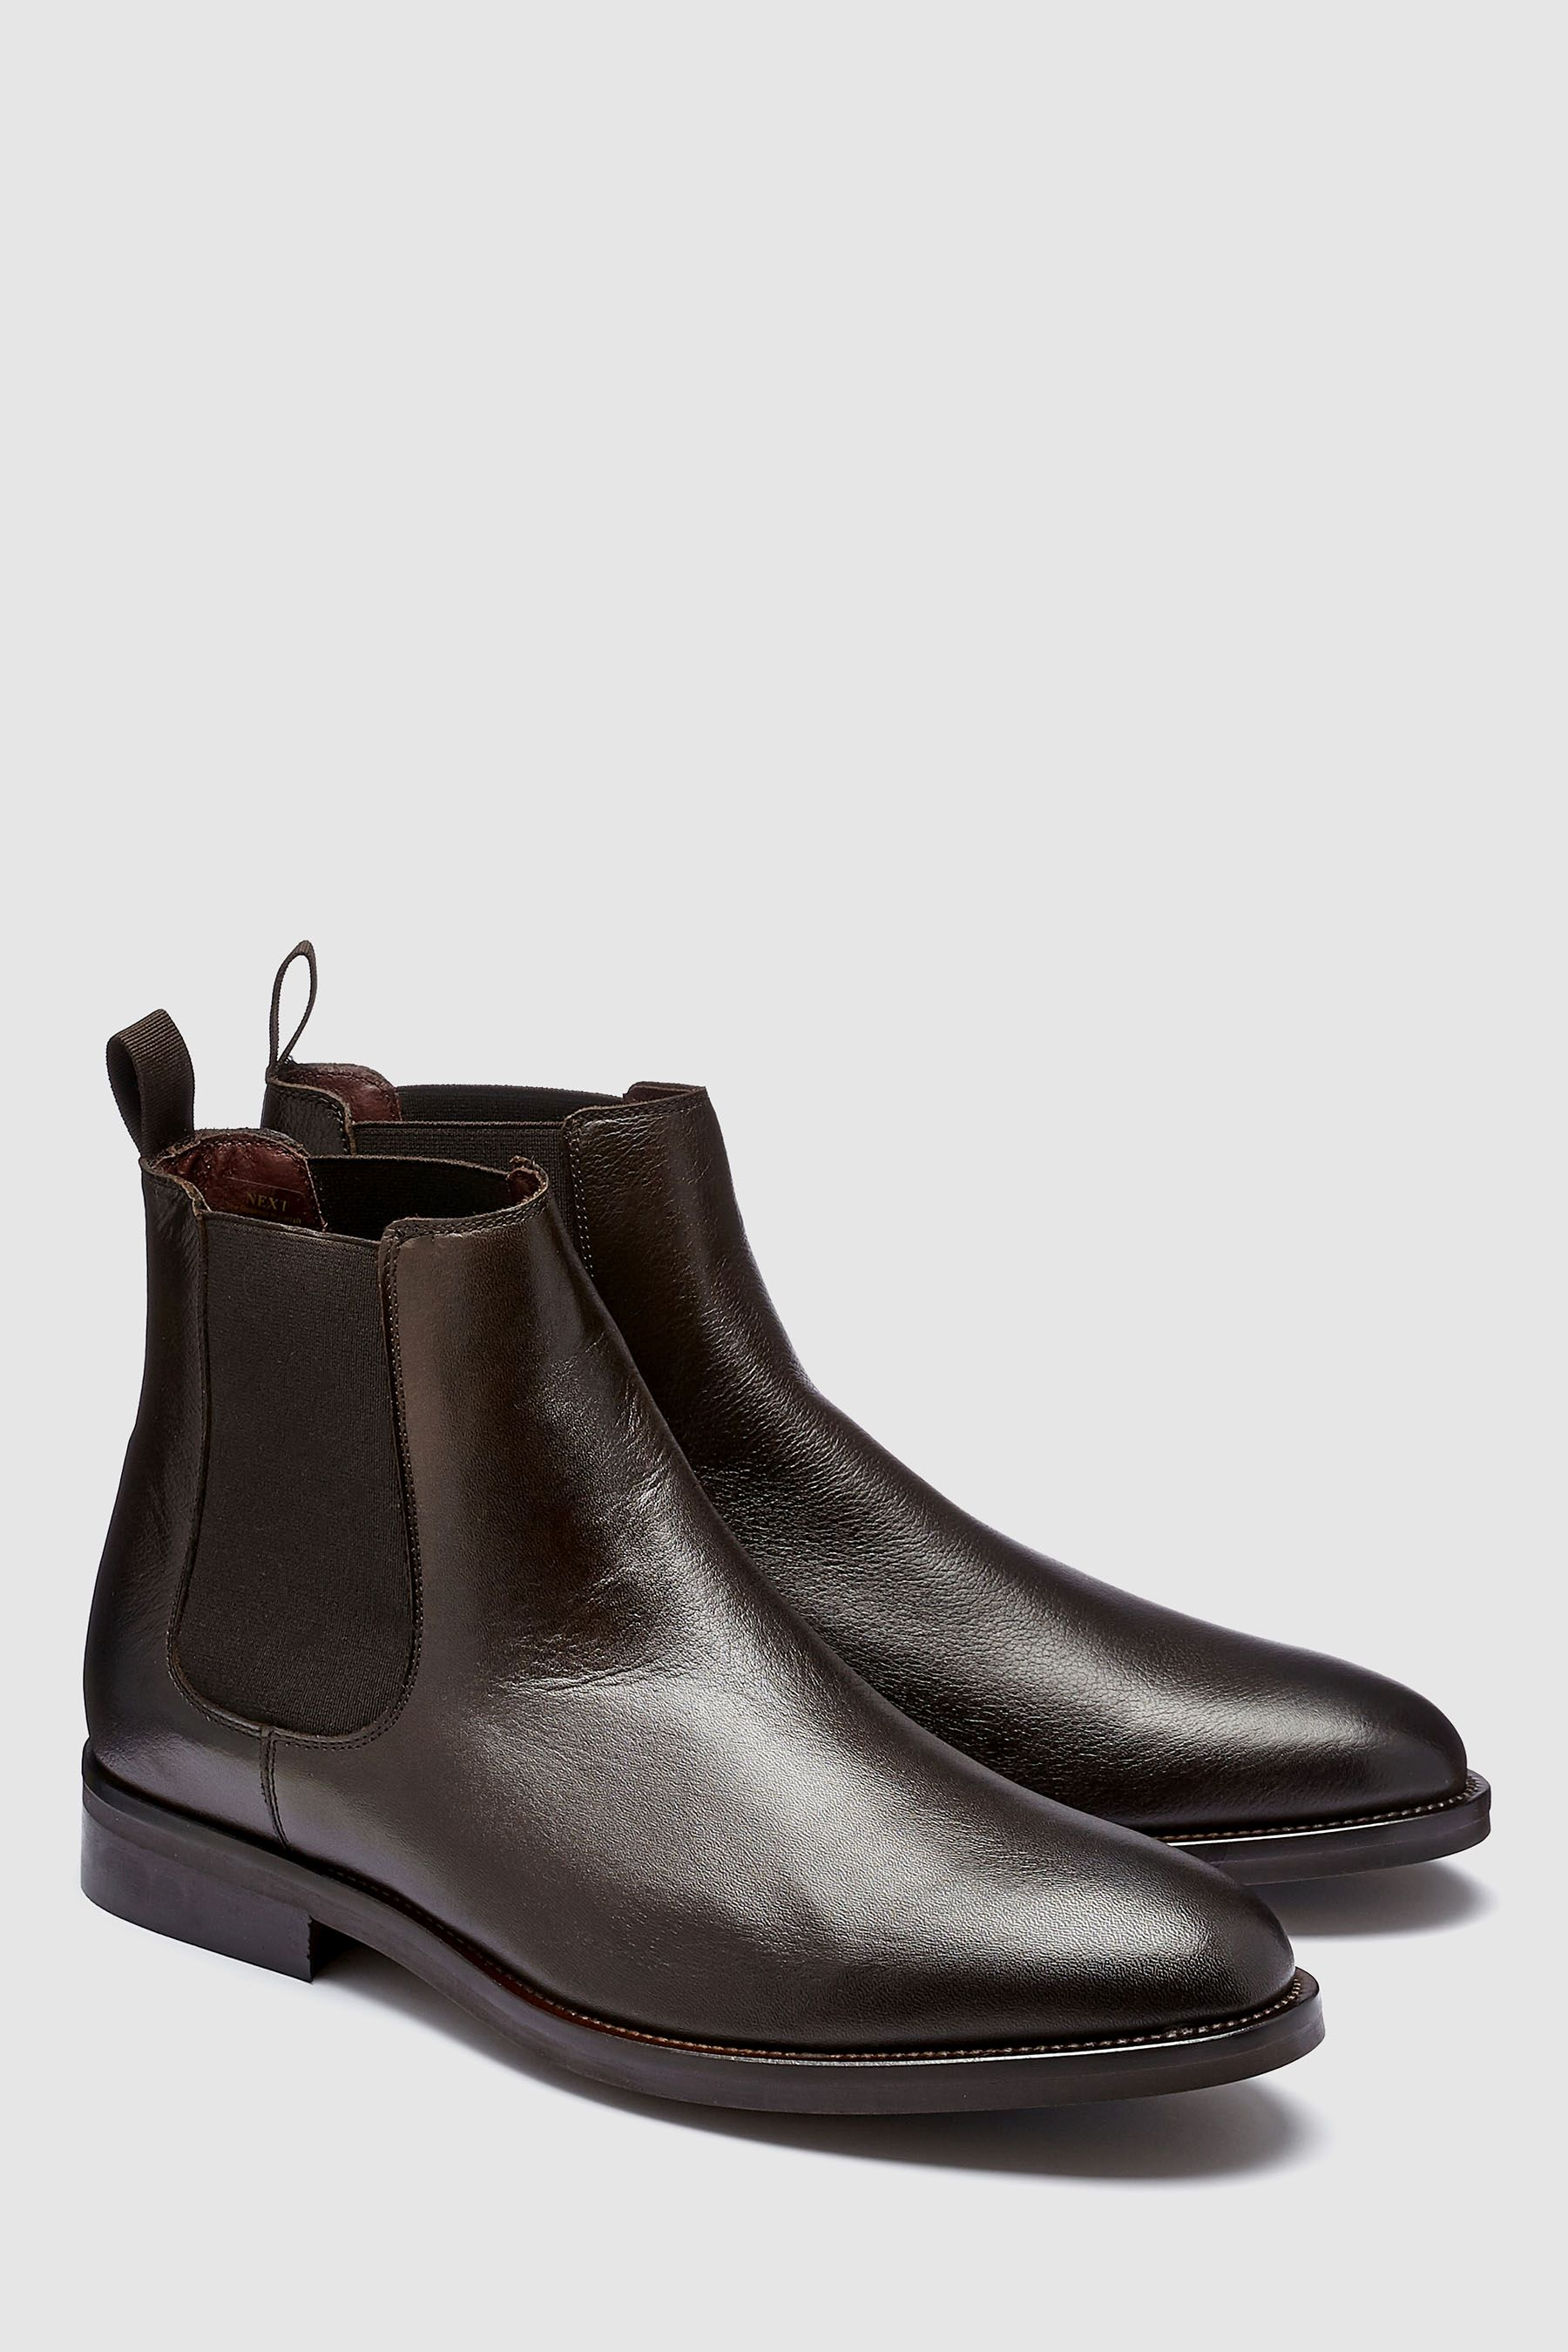 d62f9c8caa1 Mens Next Brown Signature Chelsea Boot - Brown | Products | Chelsea ...